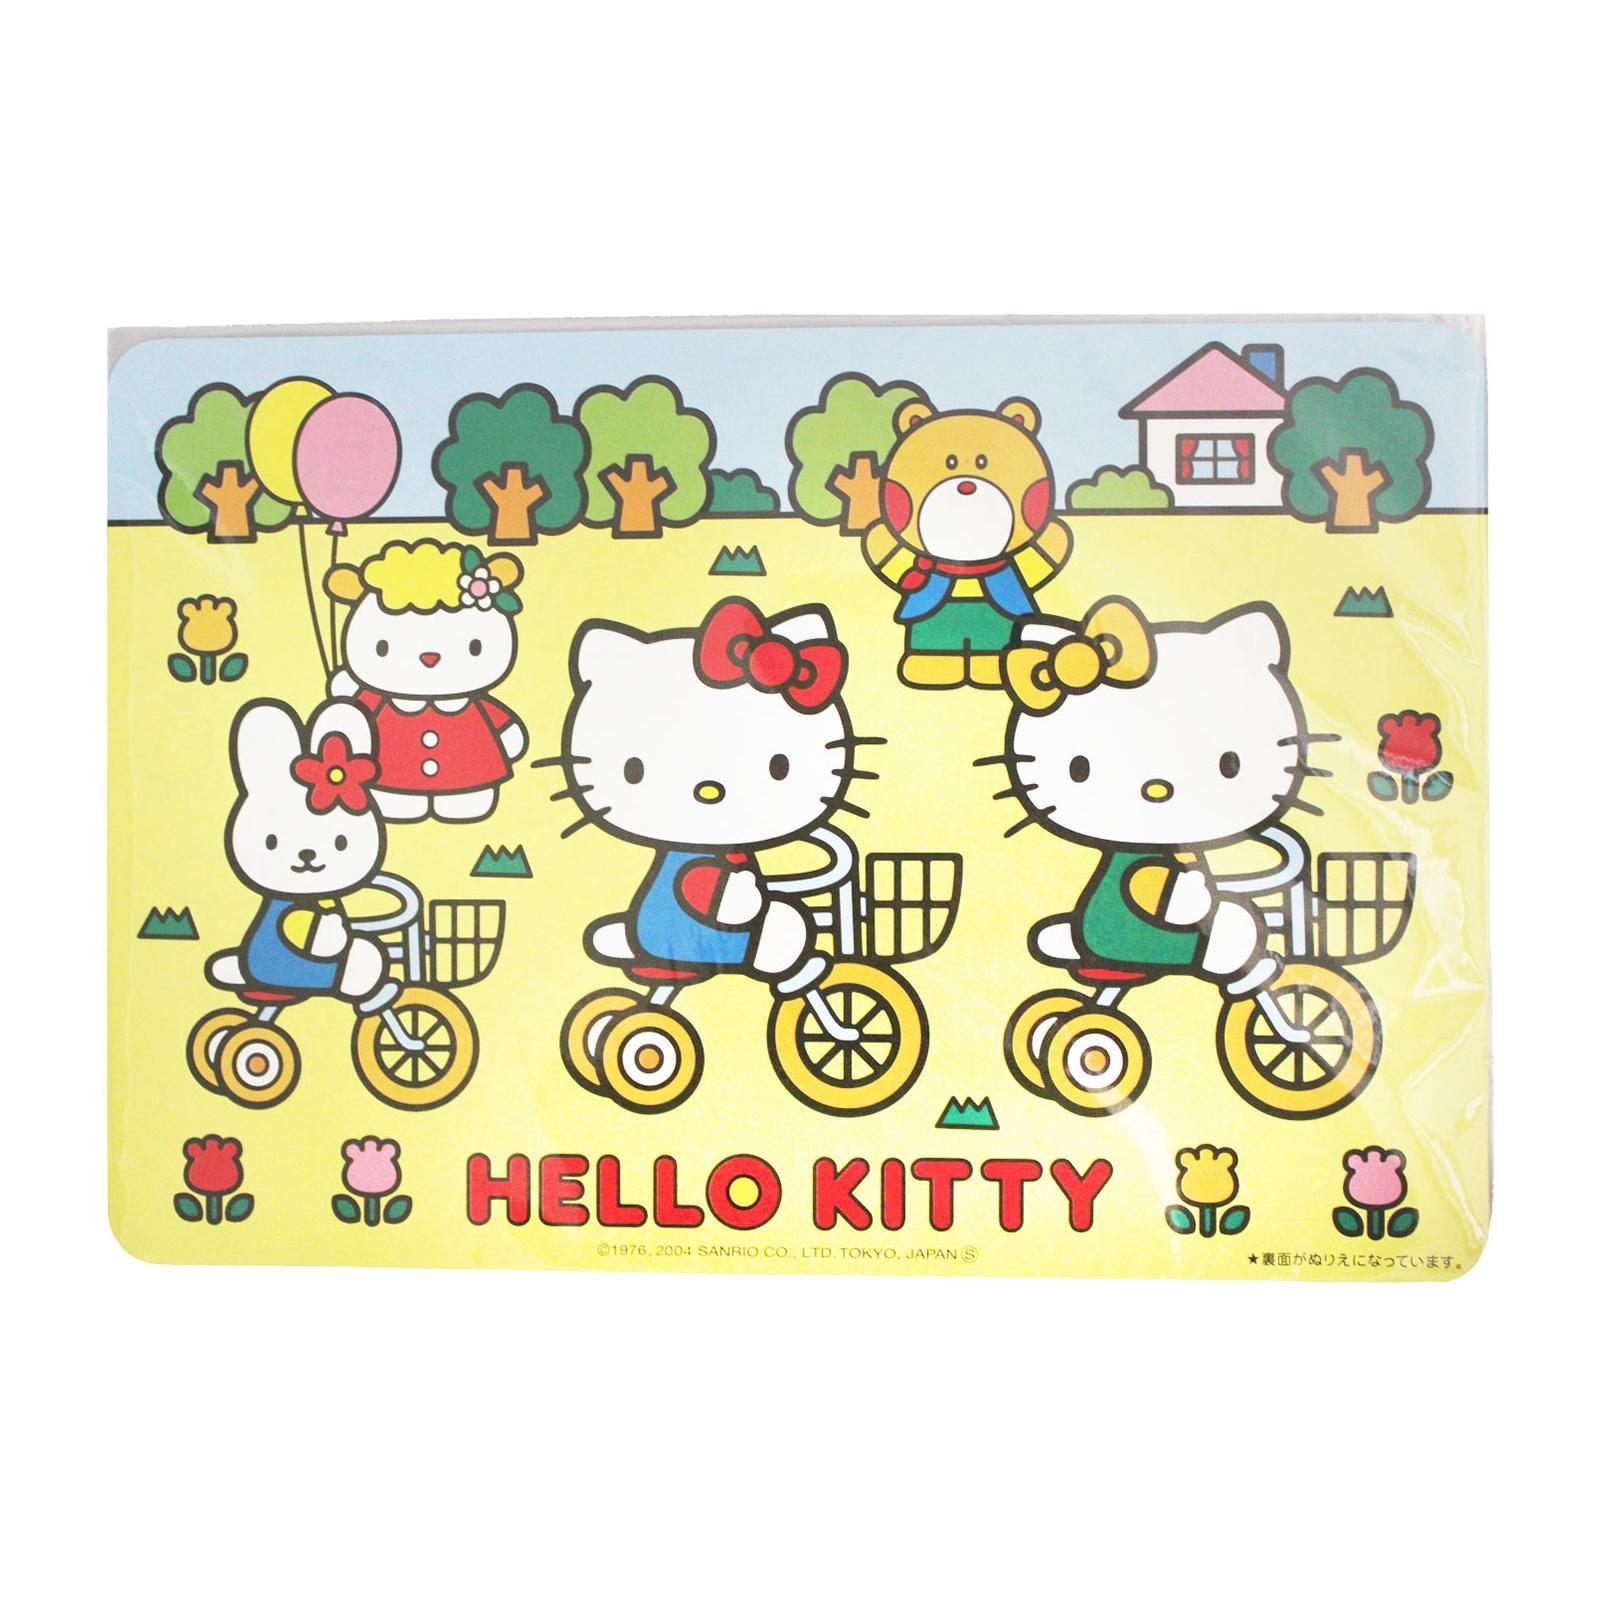 Sanrio Paper Place Mat /4 Sheets Included(Hello Kitty)